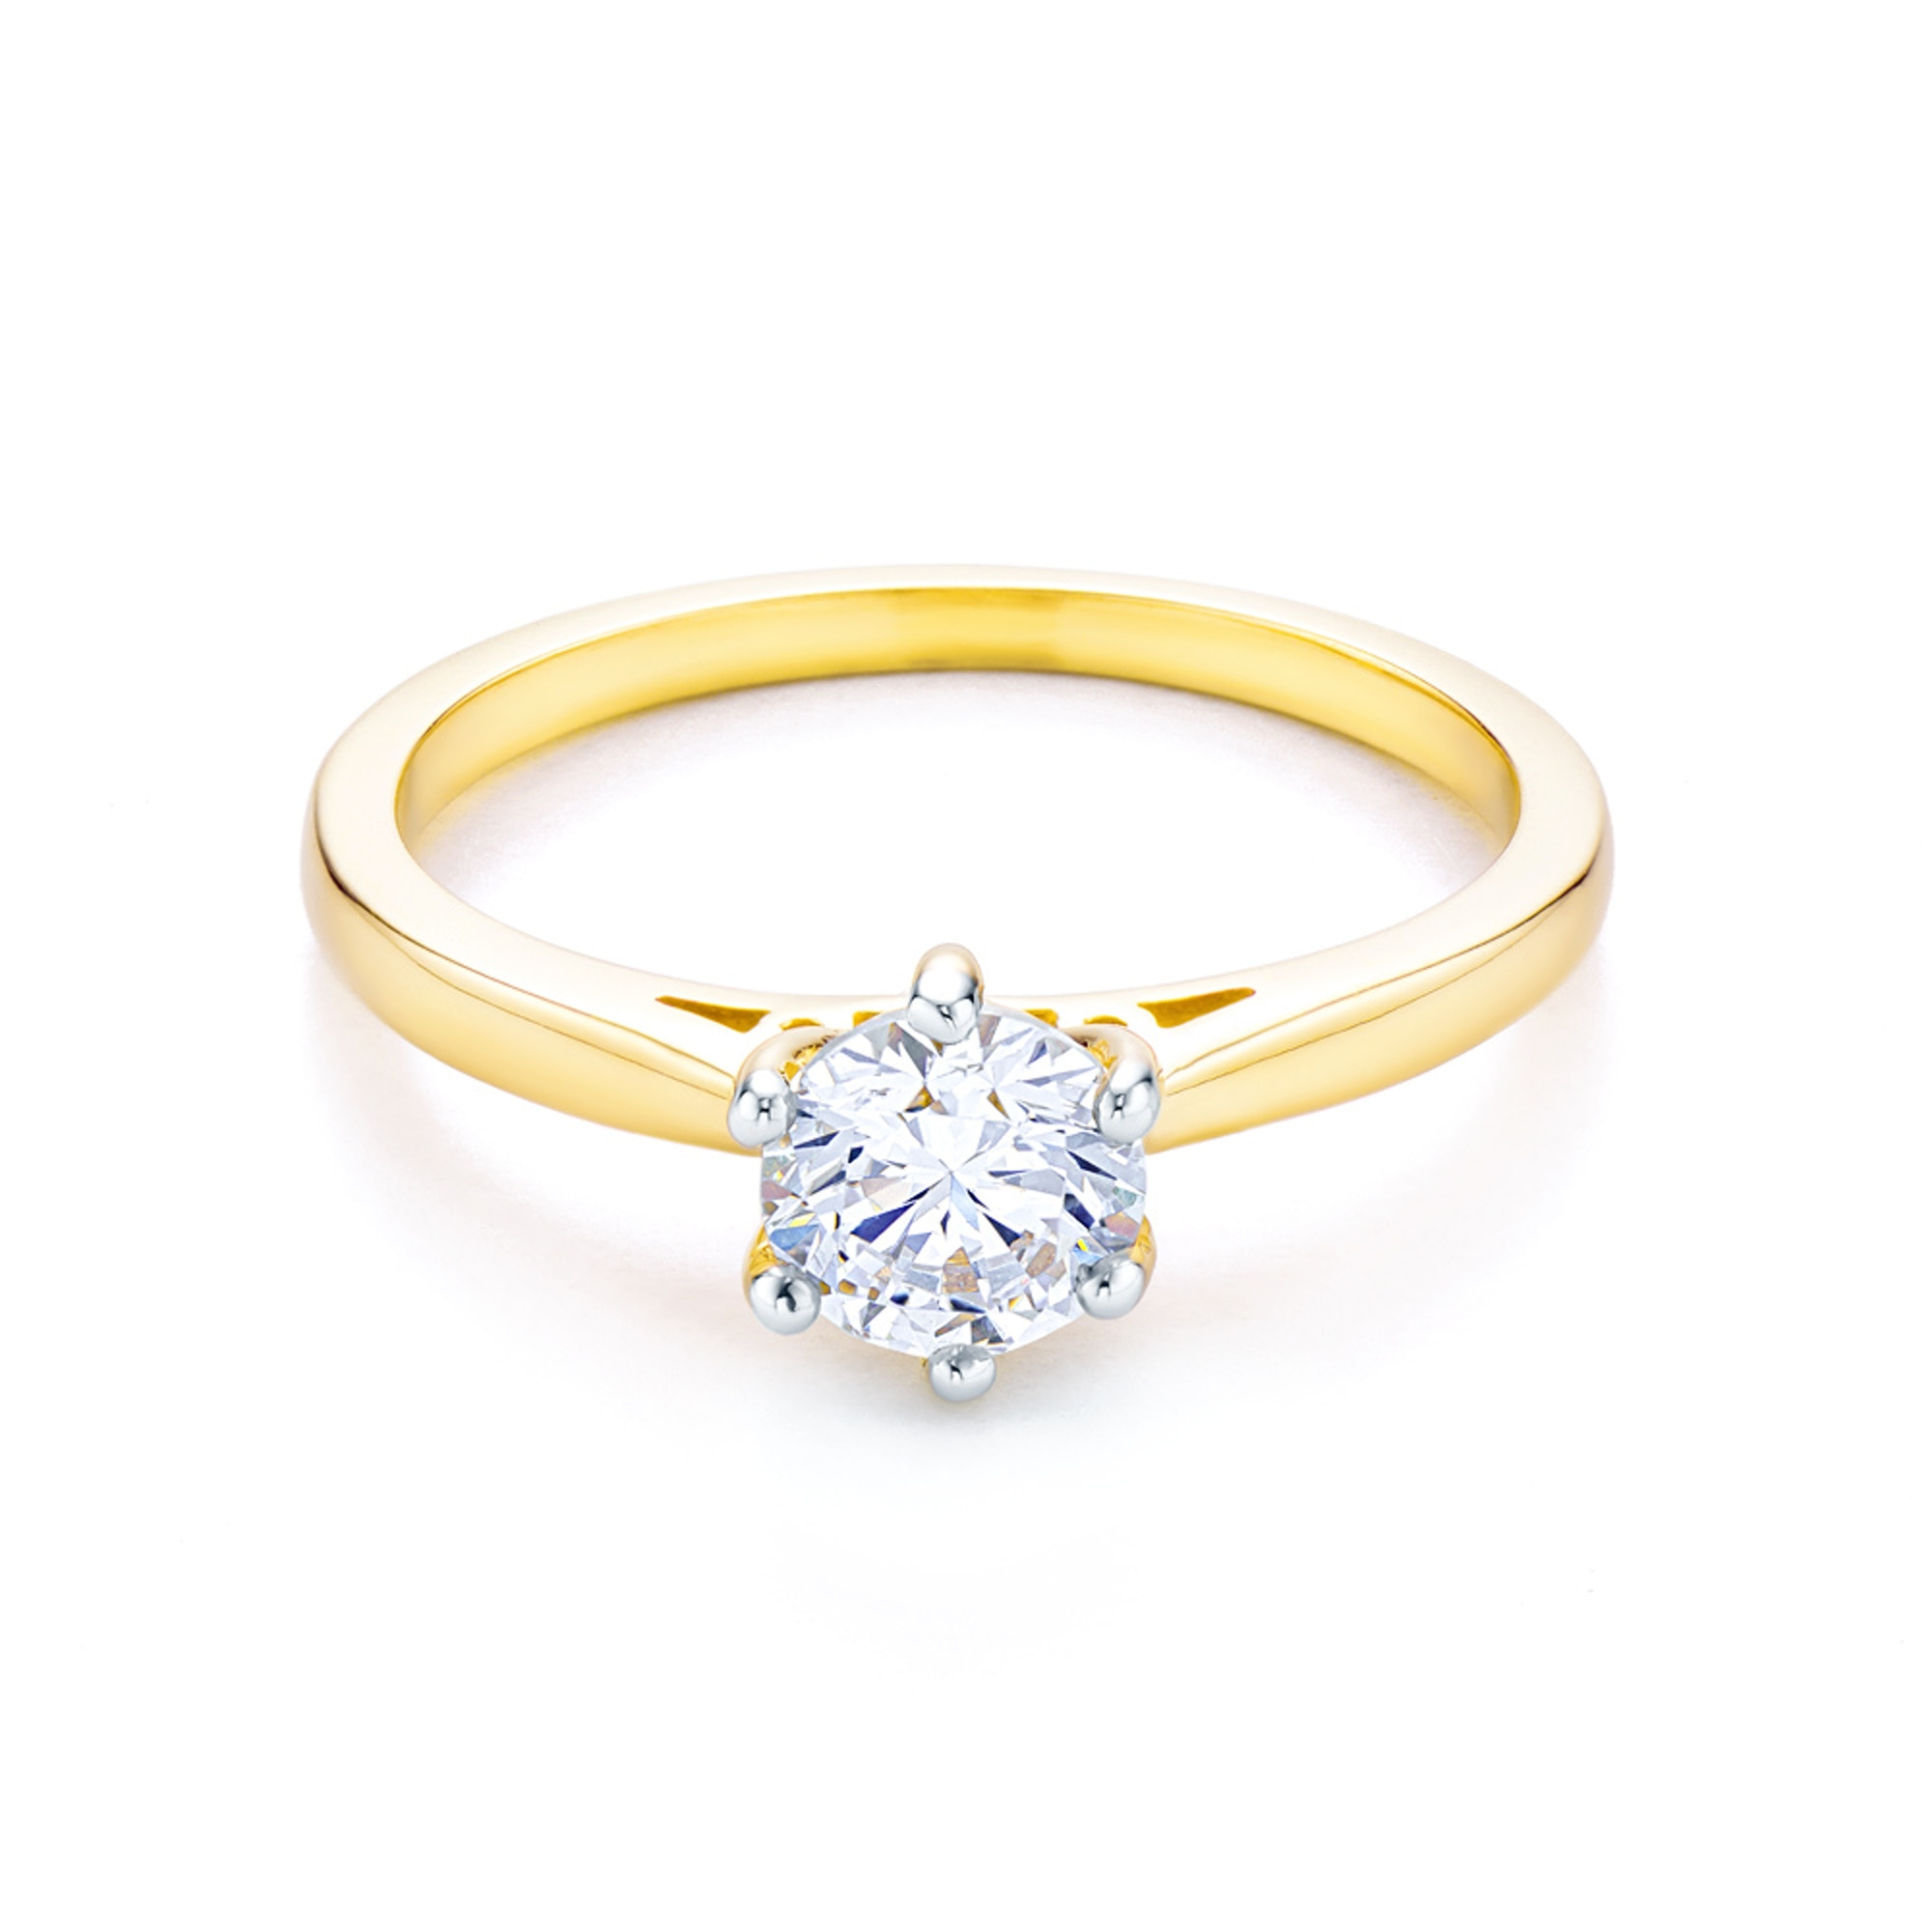 Solitaire Engagement Ring Two Colour Gold Cubic Zirconia C 12006 Pi Savicki 1976